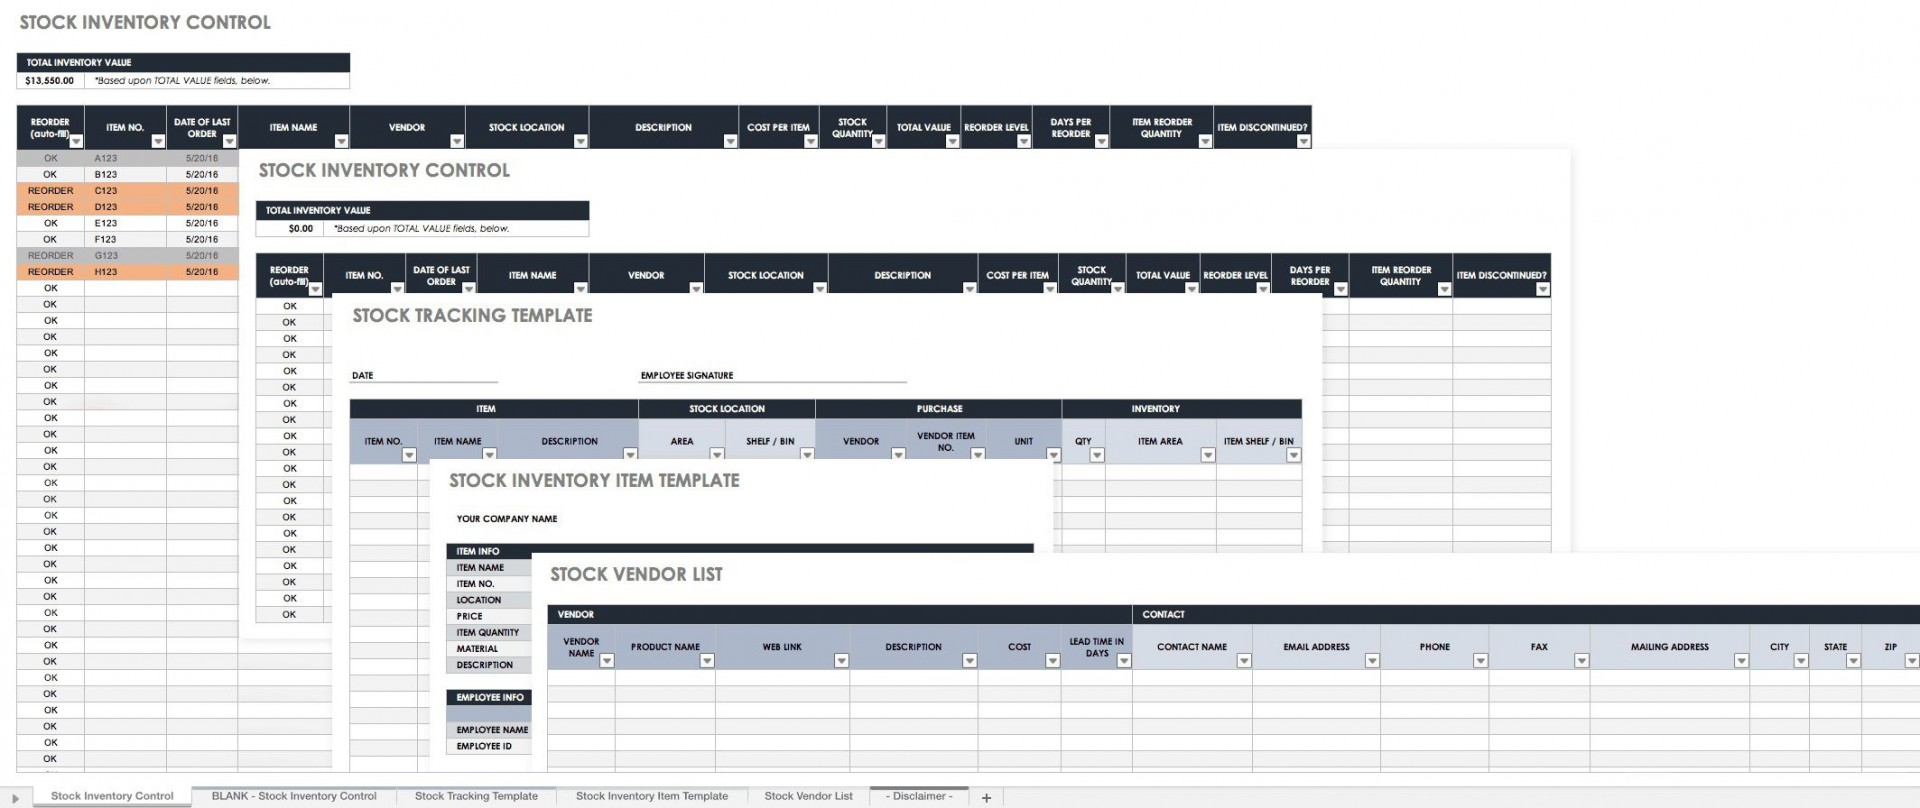 006 Excellent Excel Inventory Template With Formula High Definition  Formulas Free Uk Pdf1920